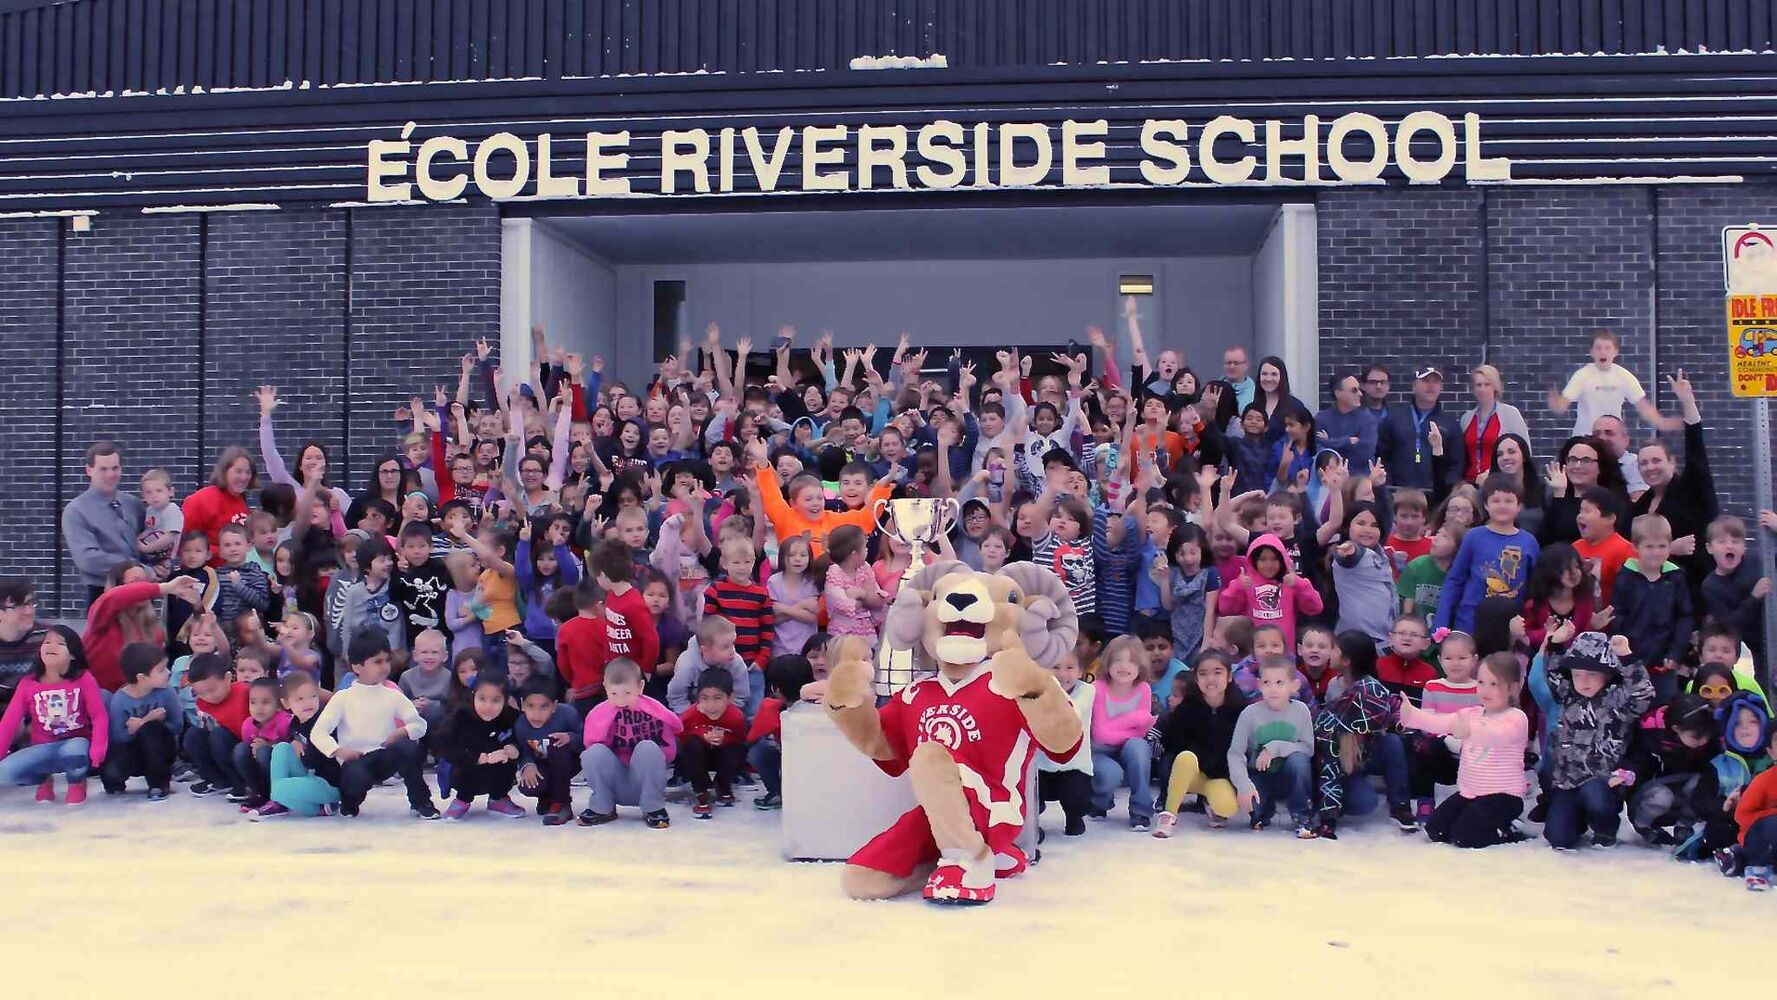 Students at Riverside School in Thompson brave the cold to shoot a group pic with the Grey Cup. The trophy visited seven schools in total that day and included a visit from former Bombers players Doug Brown and Brett MacNeil, who spoke about the importance of getting a good education, as well as the effects of bullying.  (Jeff Hamilton / Winnipeg Free Press)